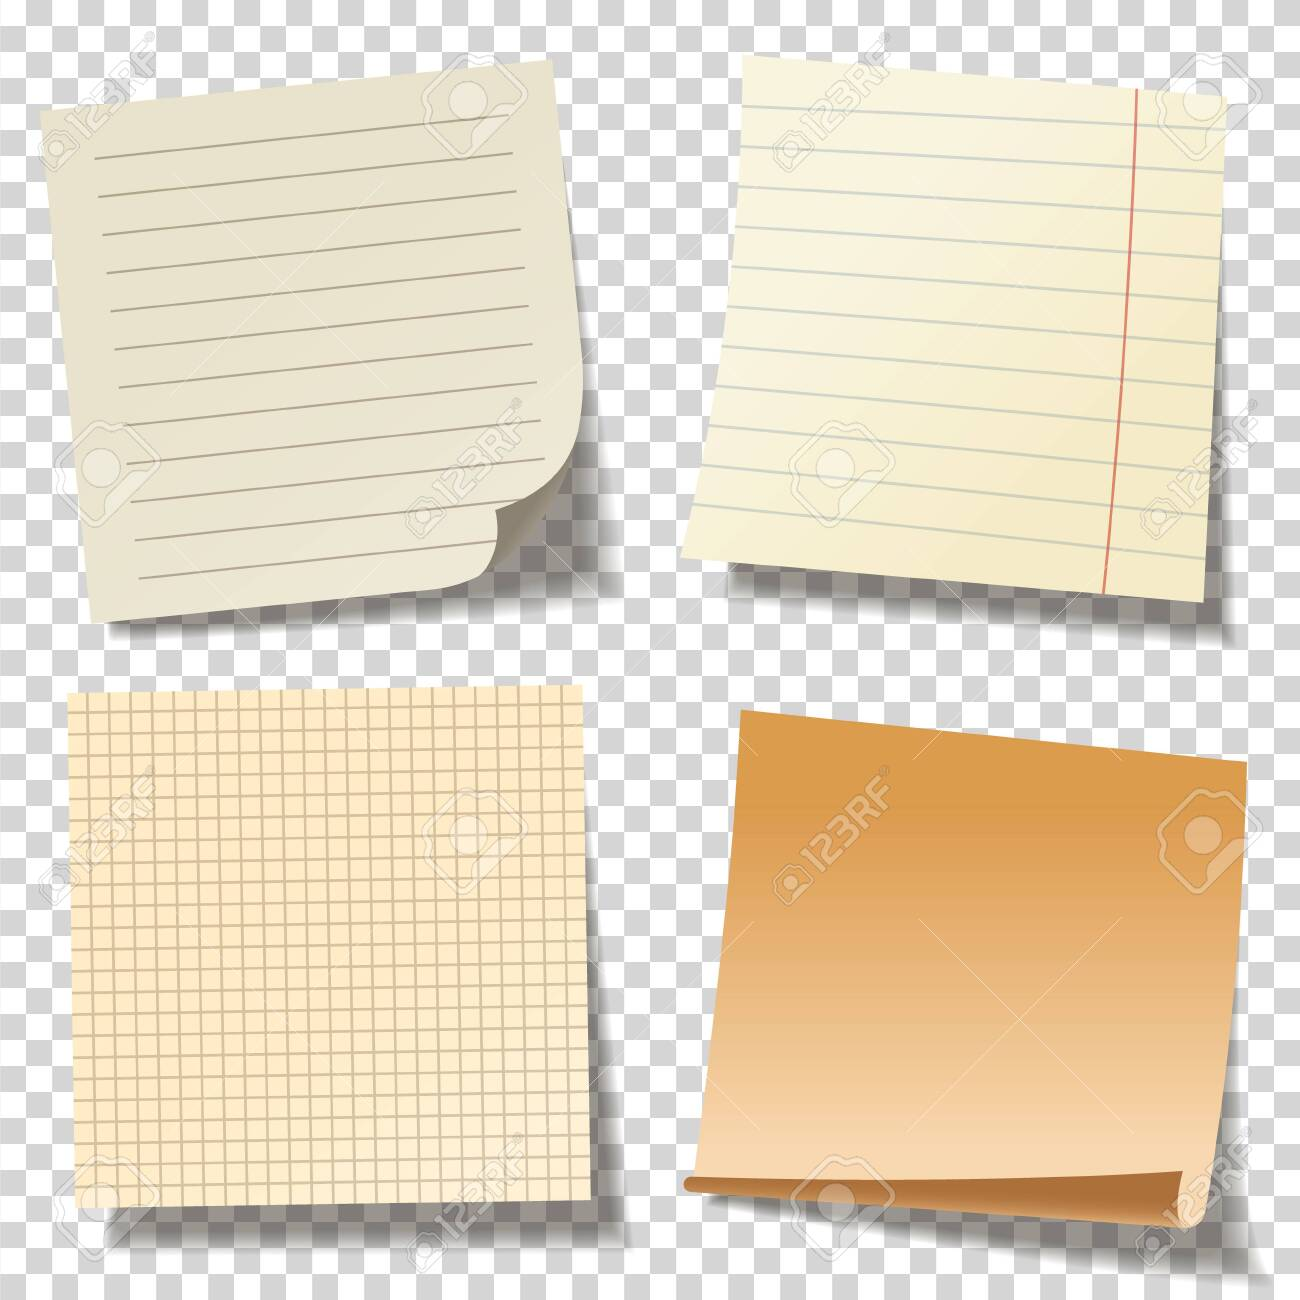 Realistic blank sticky notes. Colored sheets of note papers. Paper reminder. Vector illustration. - 153570582